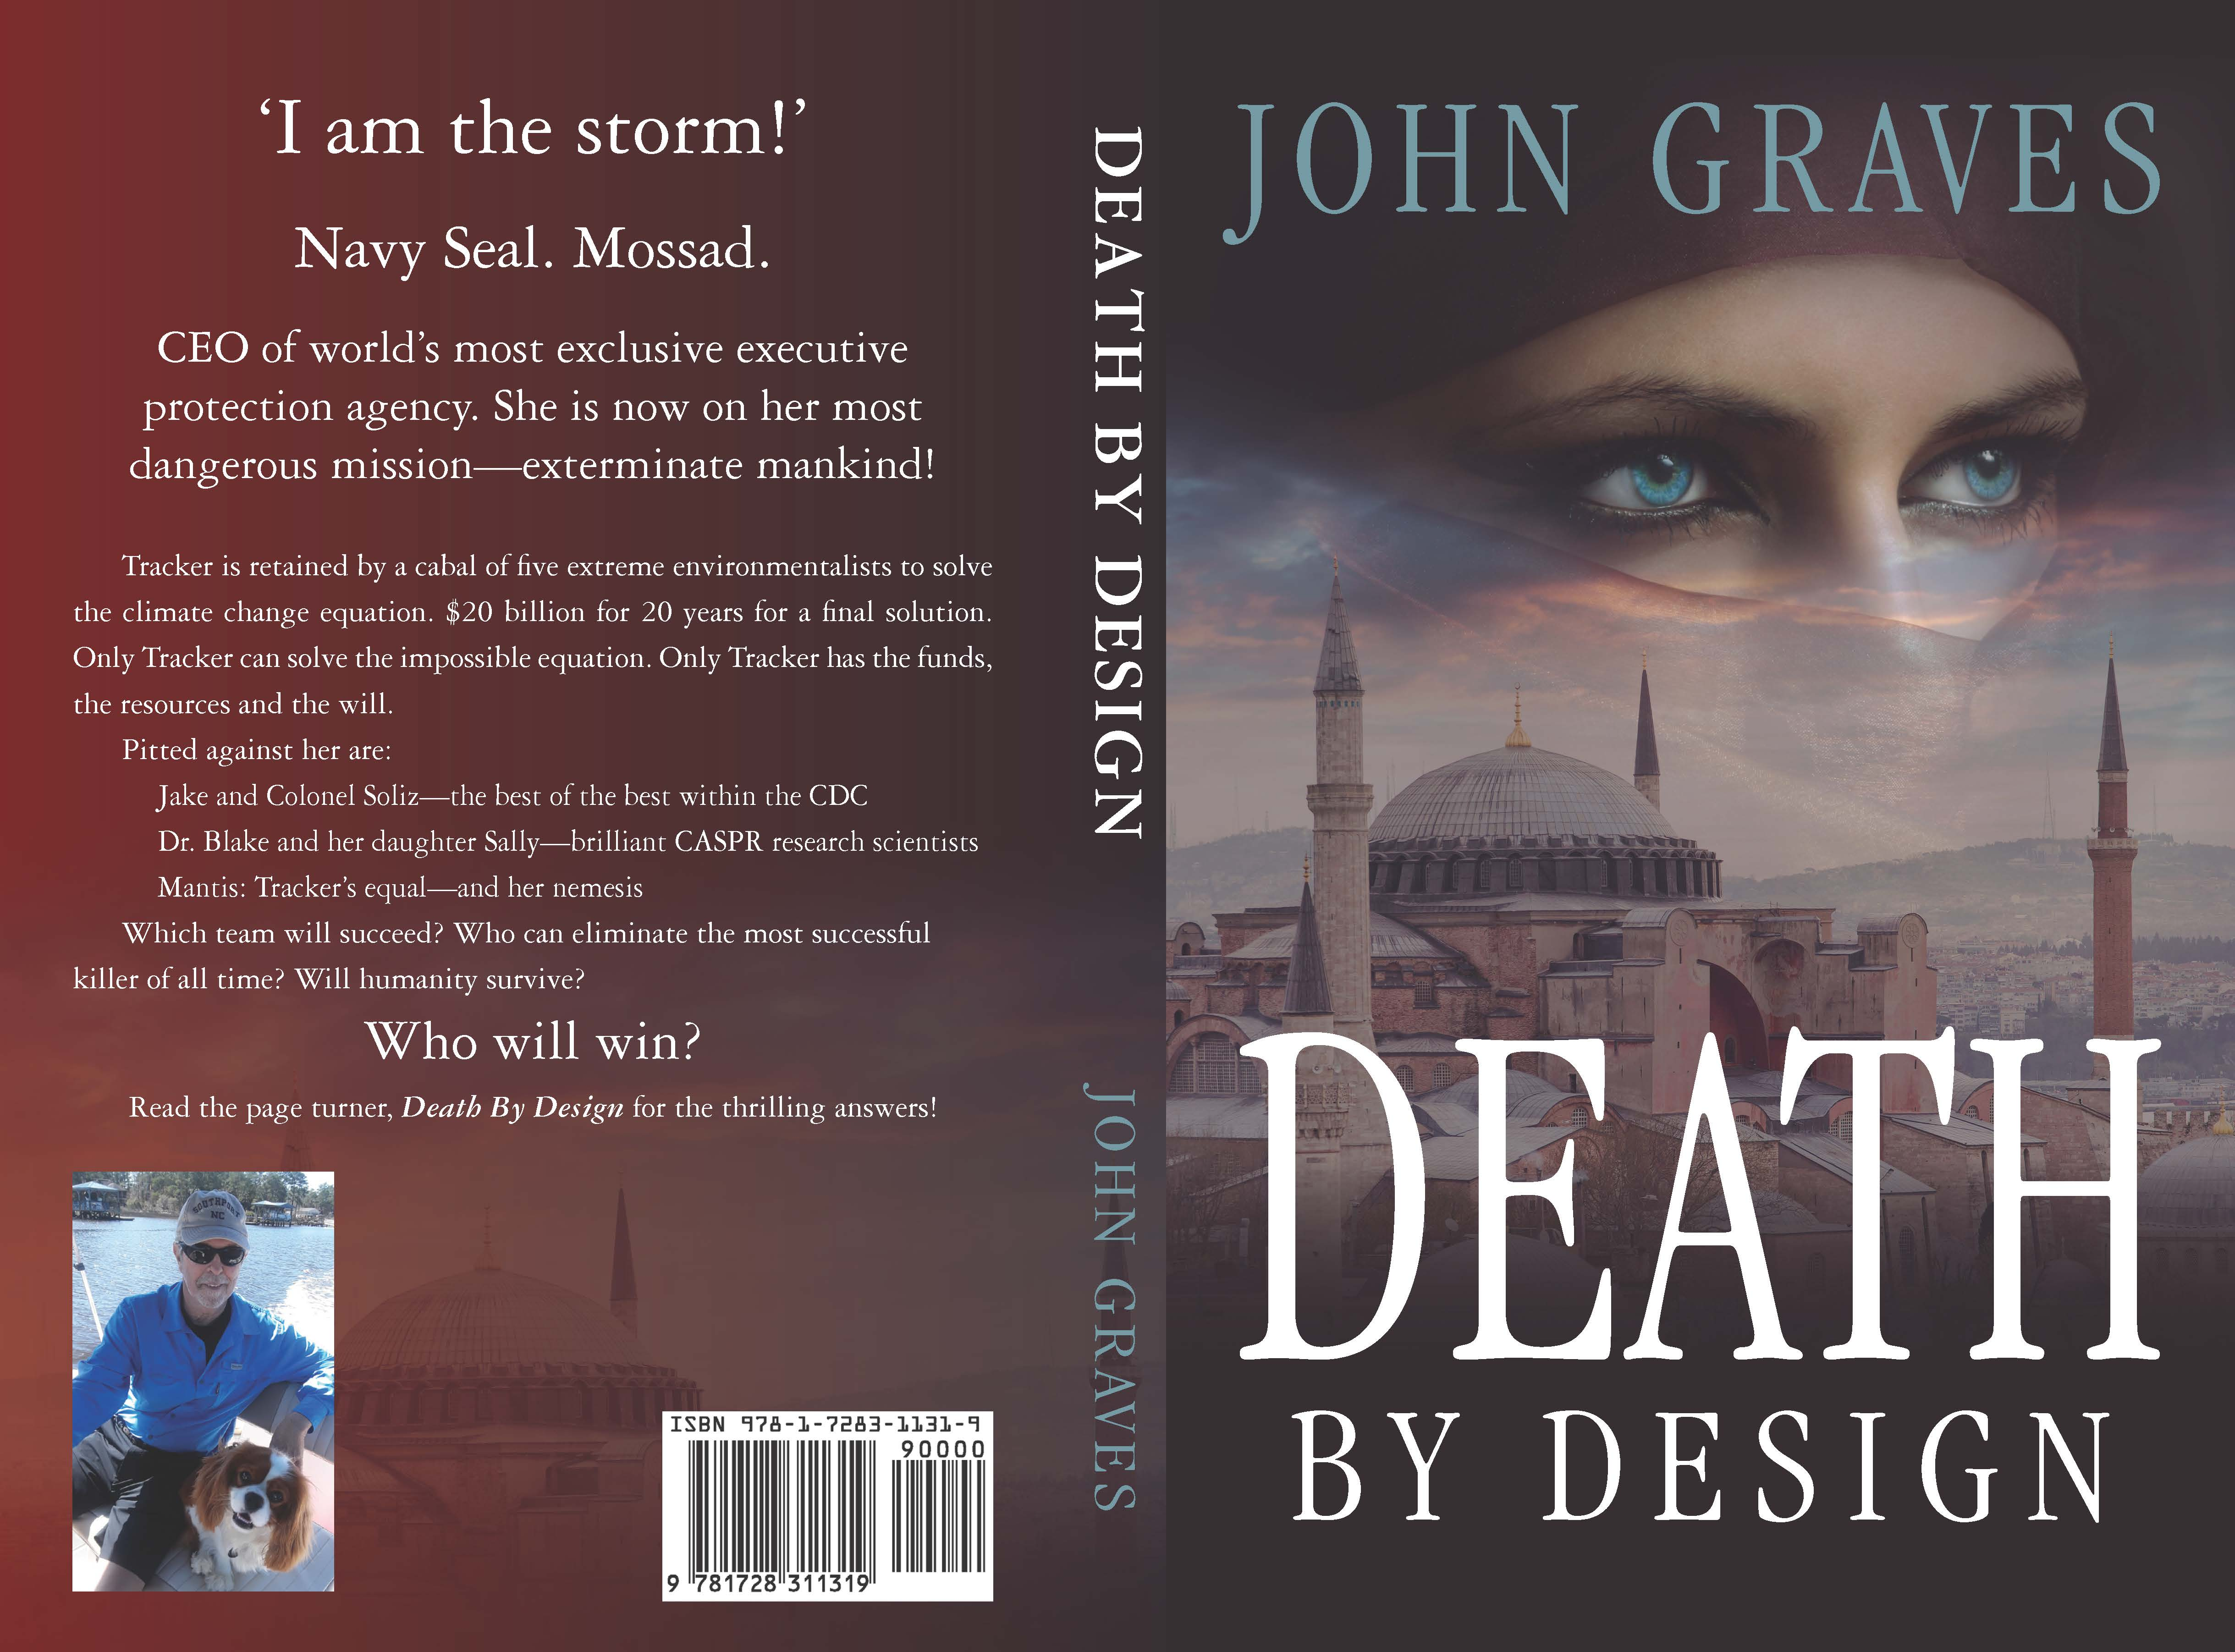 Featured Post: DEATH BY DESIGN by JOHN GRAVES